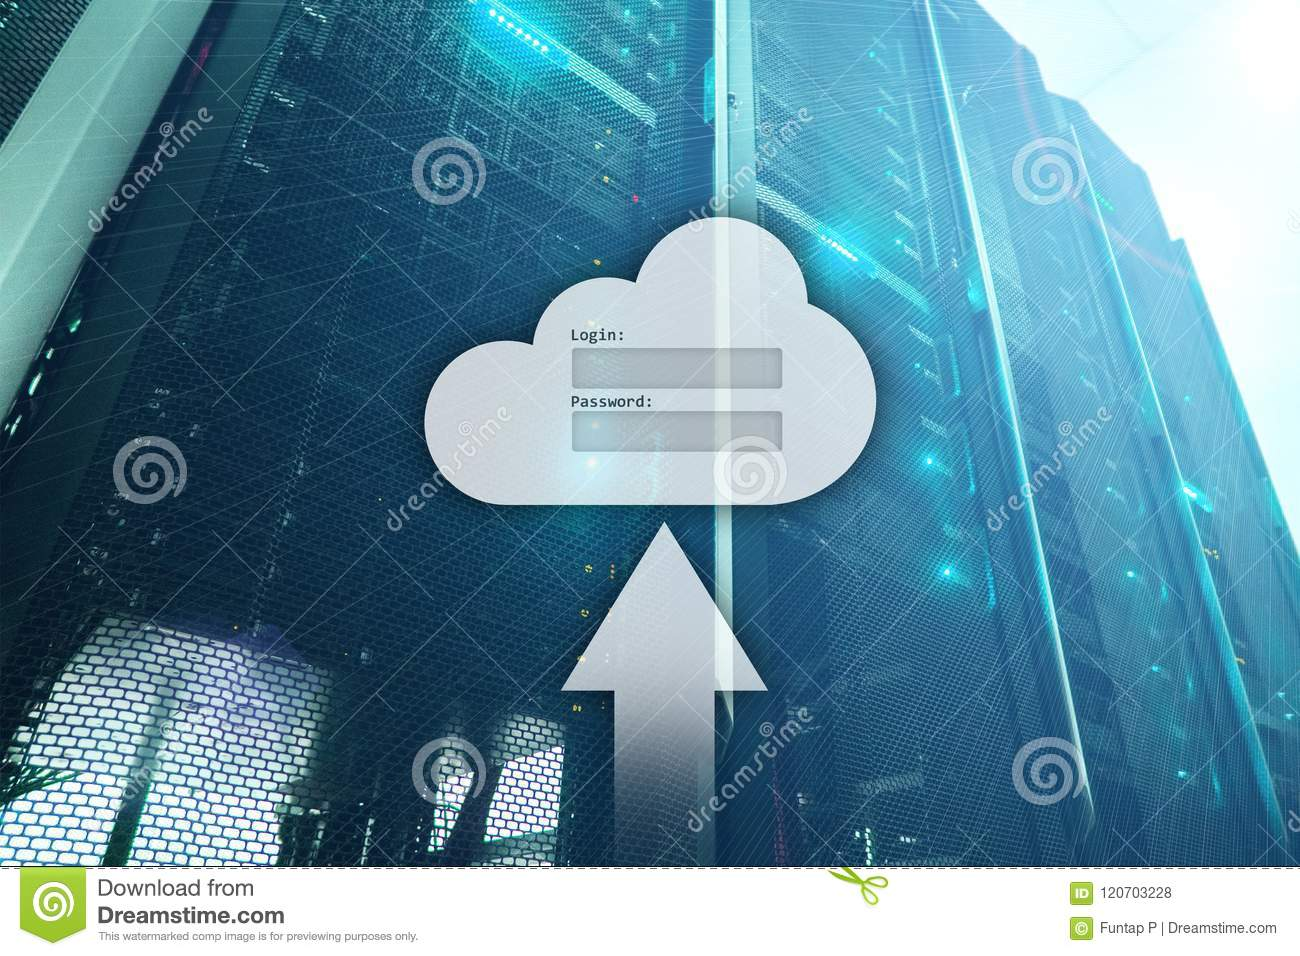 Cloud storage, data access, login and password request window on server room background. Internet and technology concept